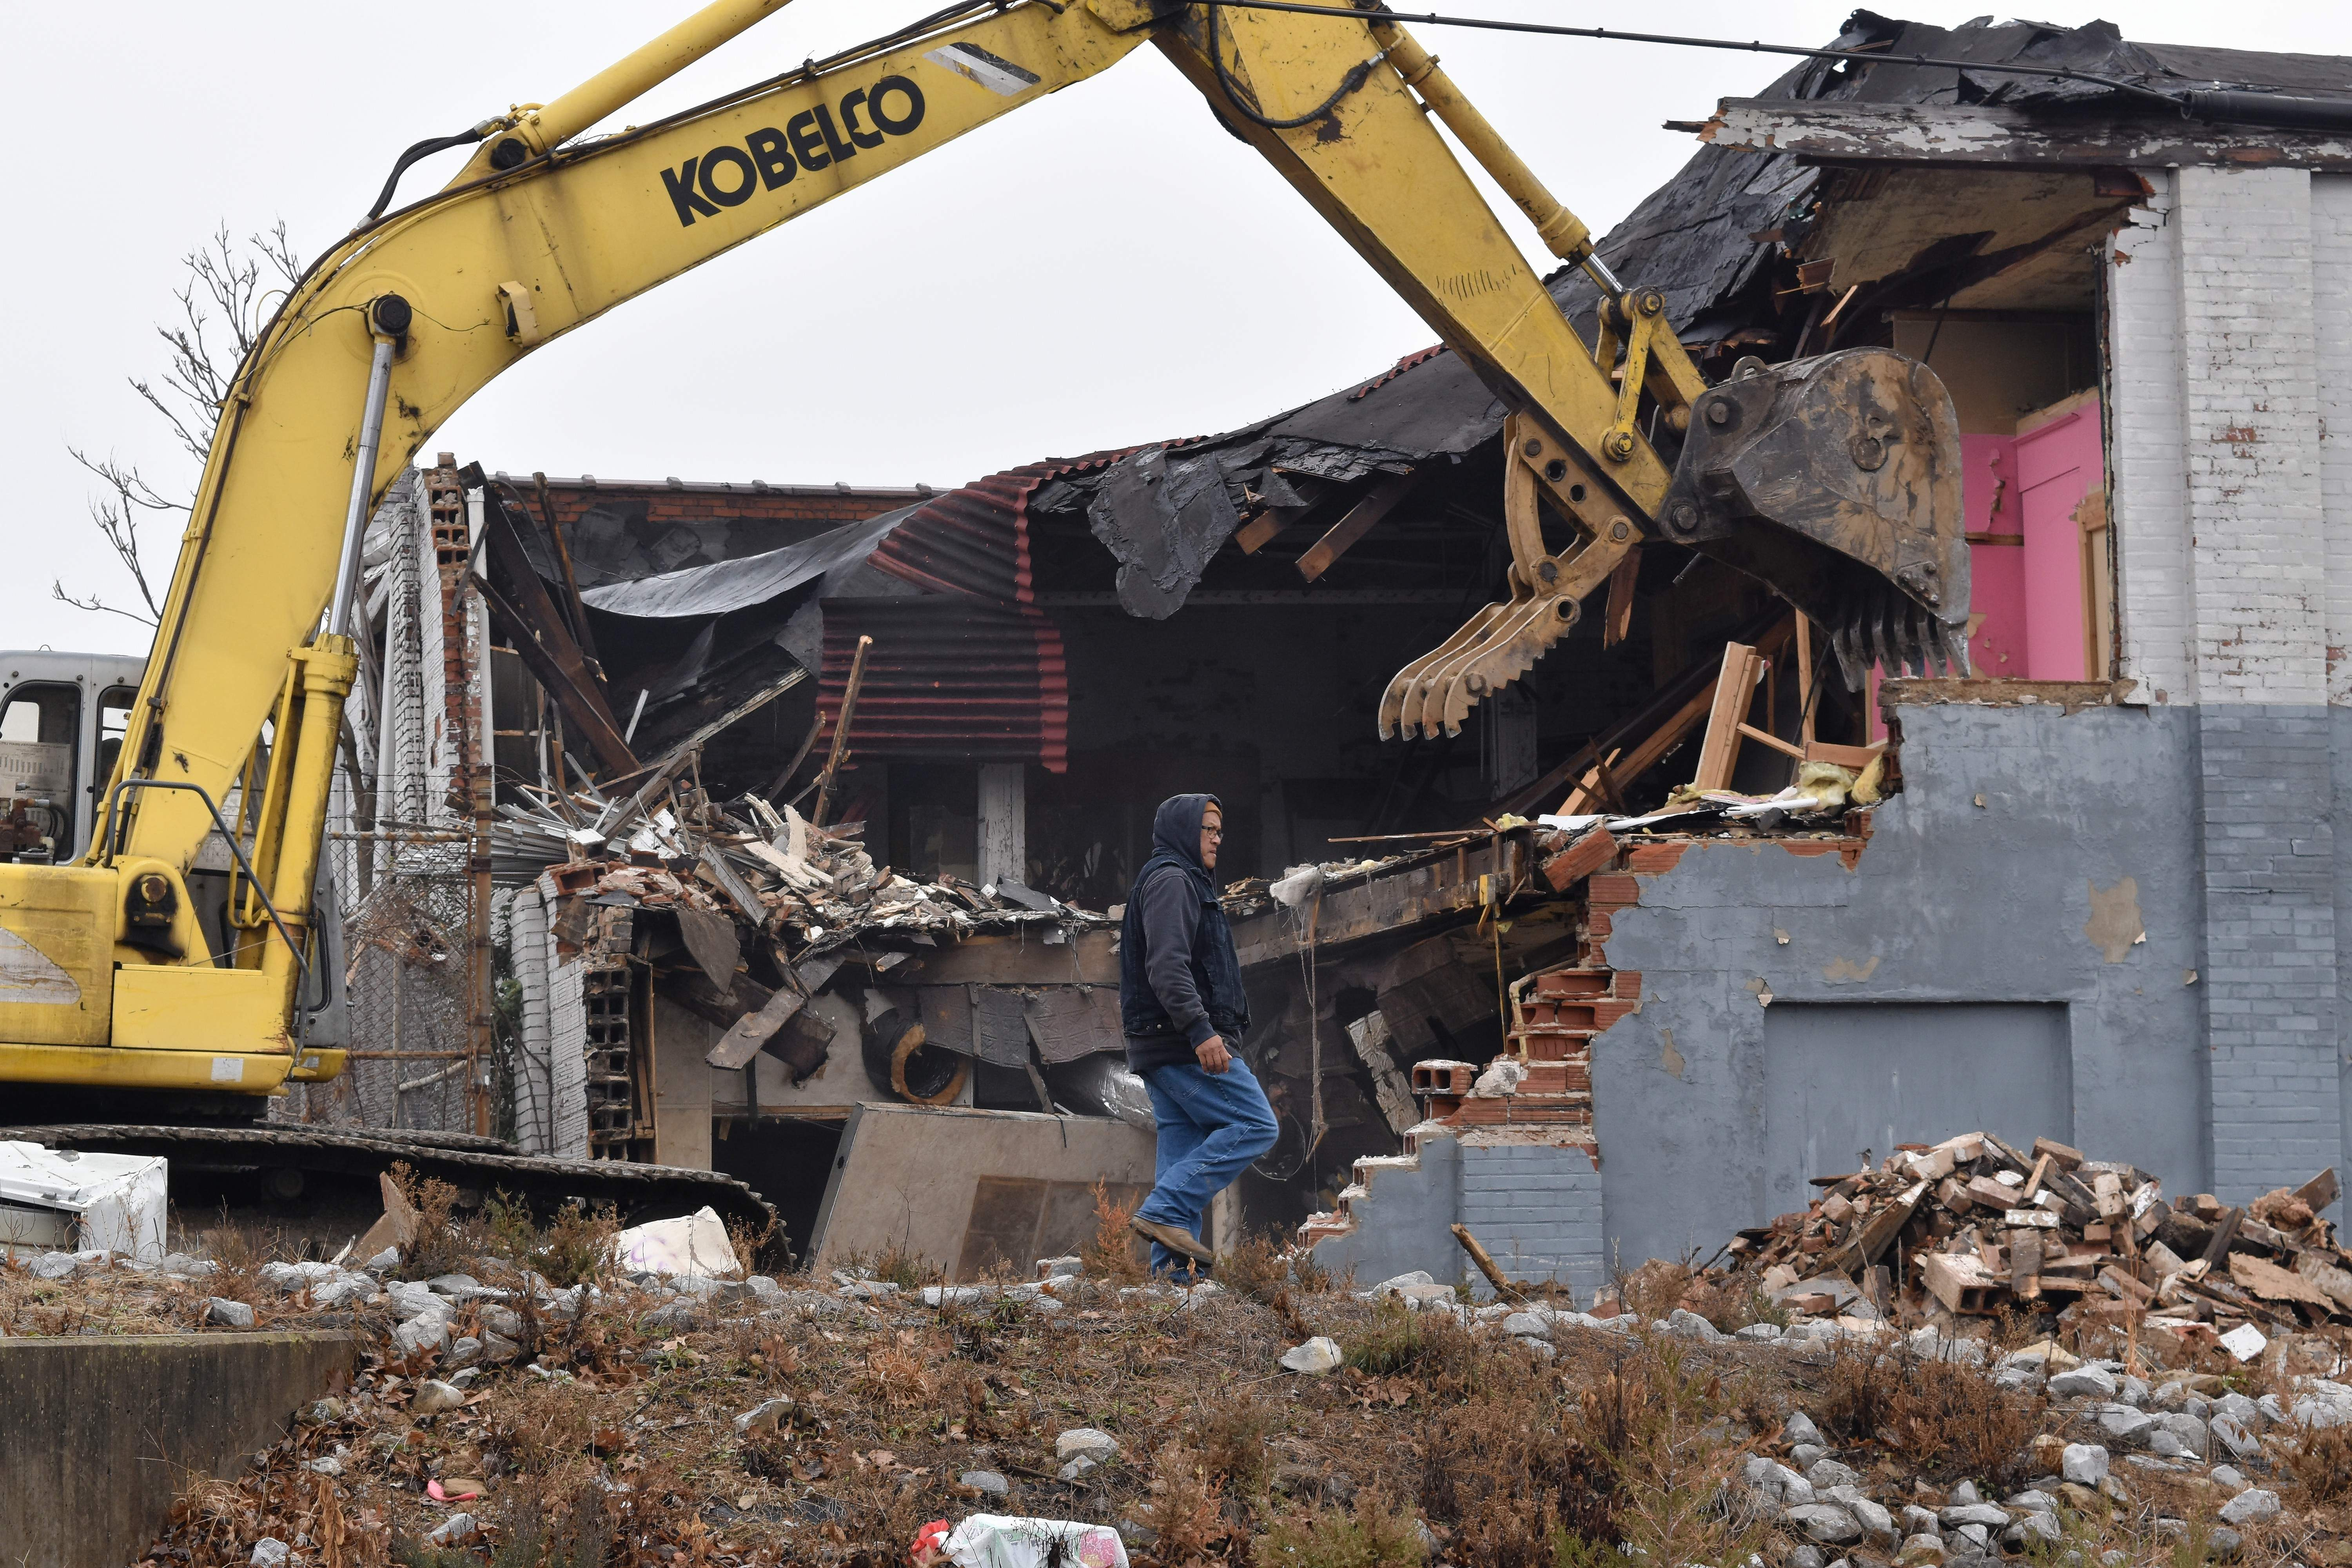 A demolition worker moves his position as another worker using a trackhoe tears down a brick building on Jackson Street in Harrisburg. This is part of the city's ongoing project to renovate properties within the city.